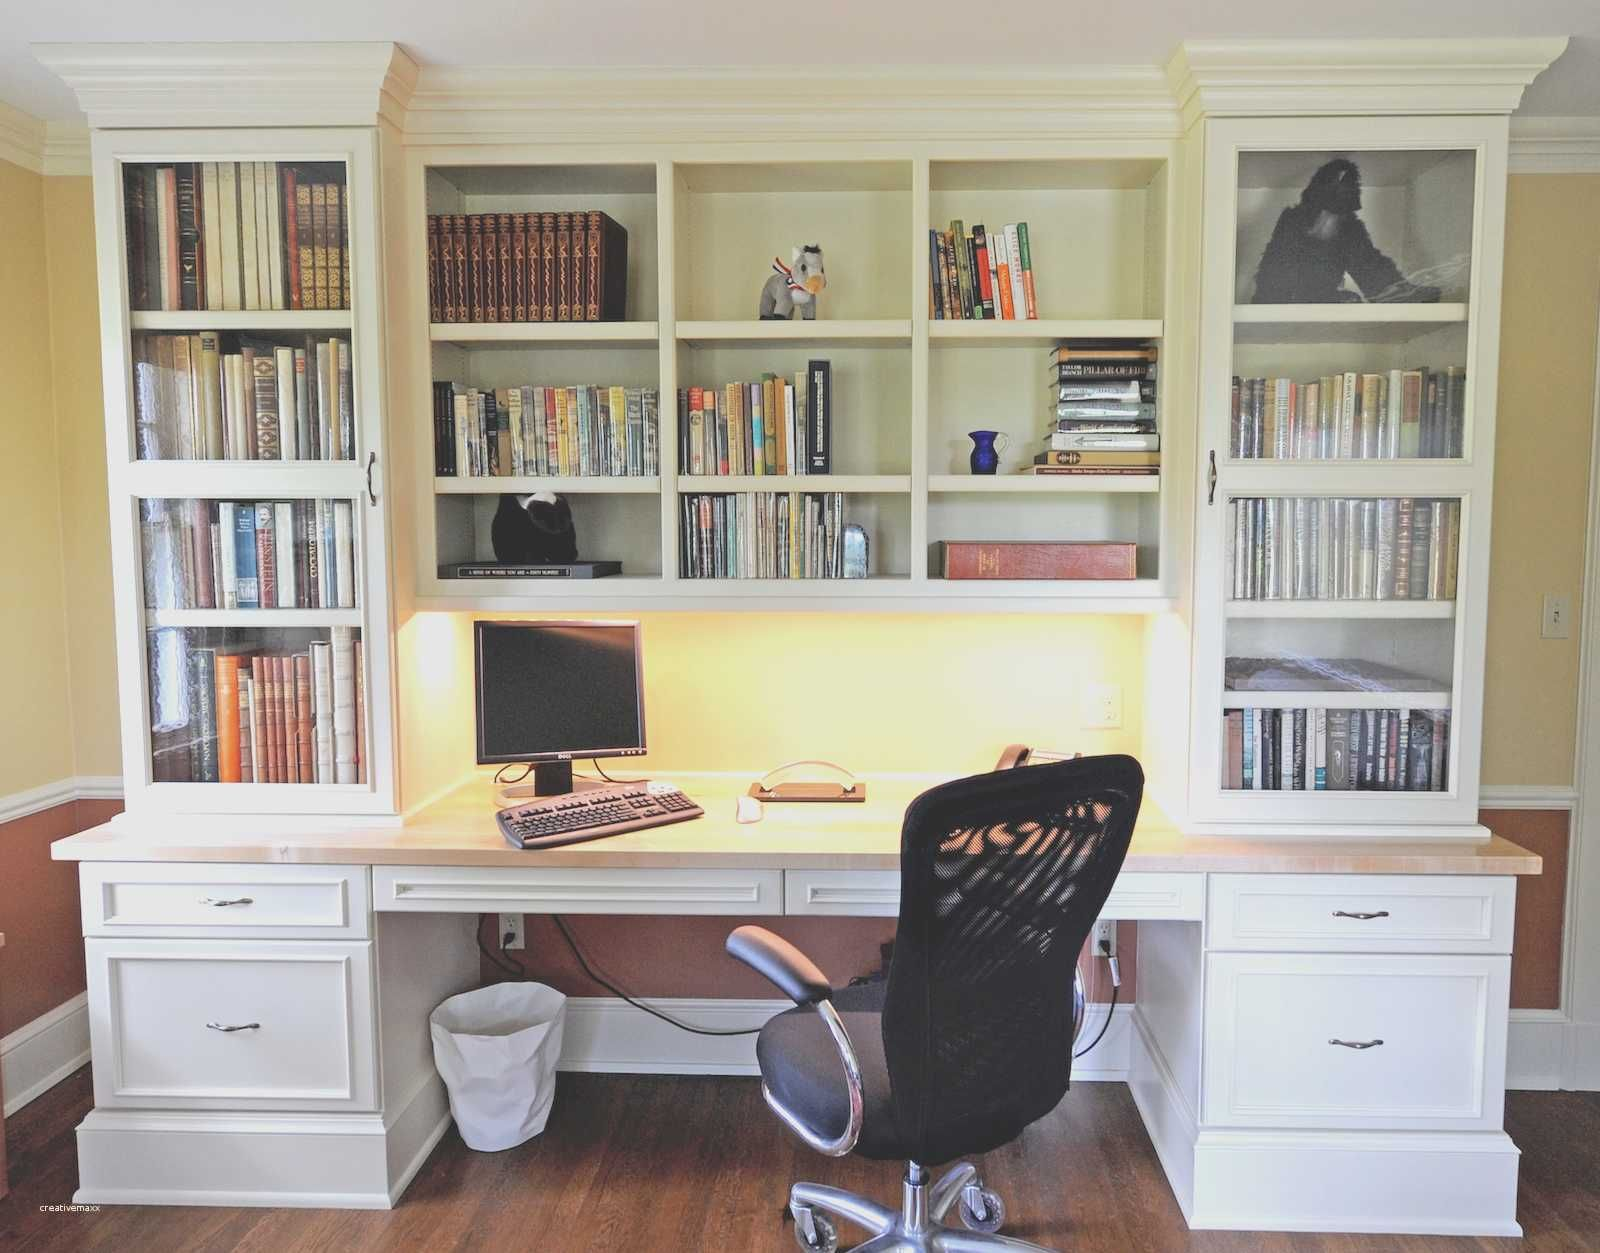 Office Built Ins Desk Bookcases Elegant Office Built Ins Desk Bookcases Wondrous Corner White Home Fice Design Bookshelf Desk Office Built Ins Bookcase Desk